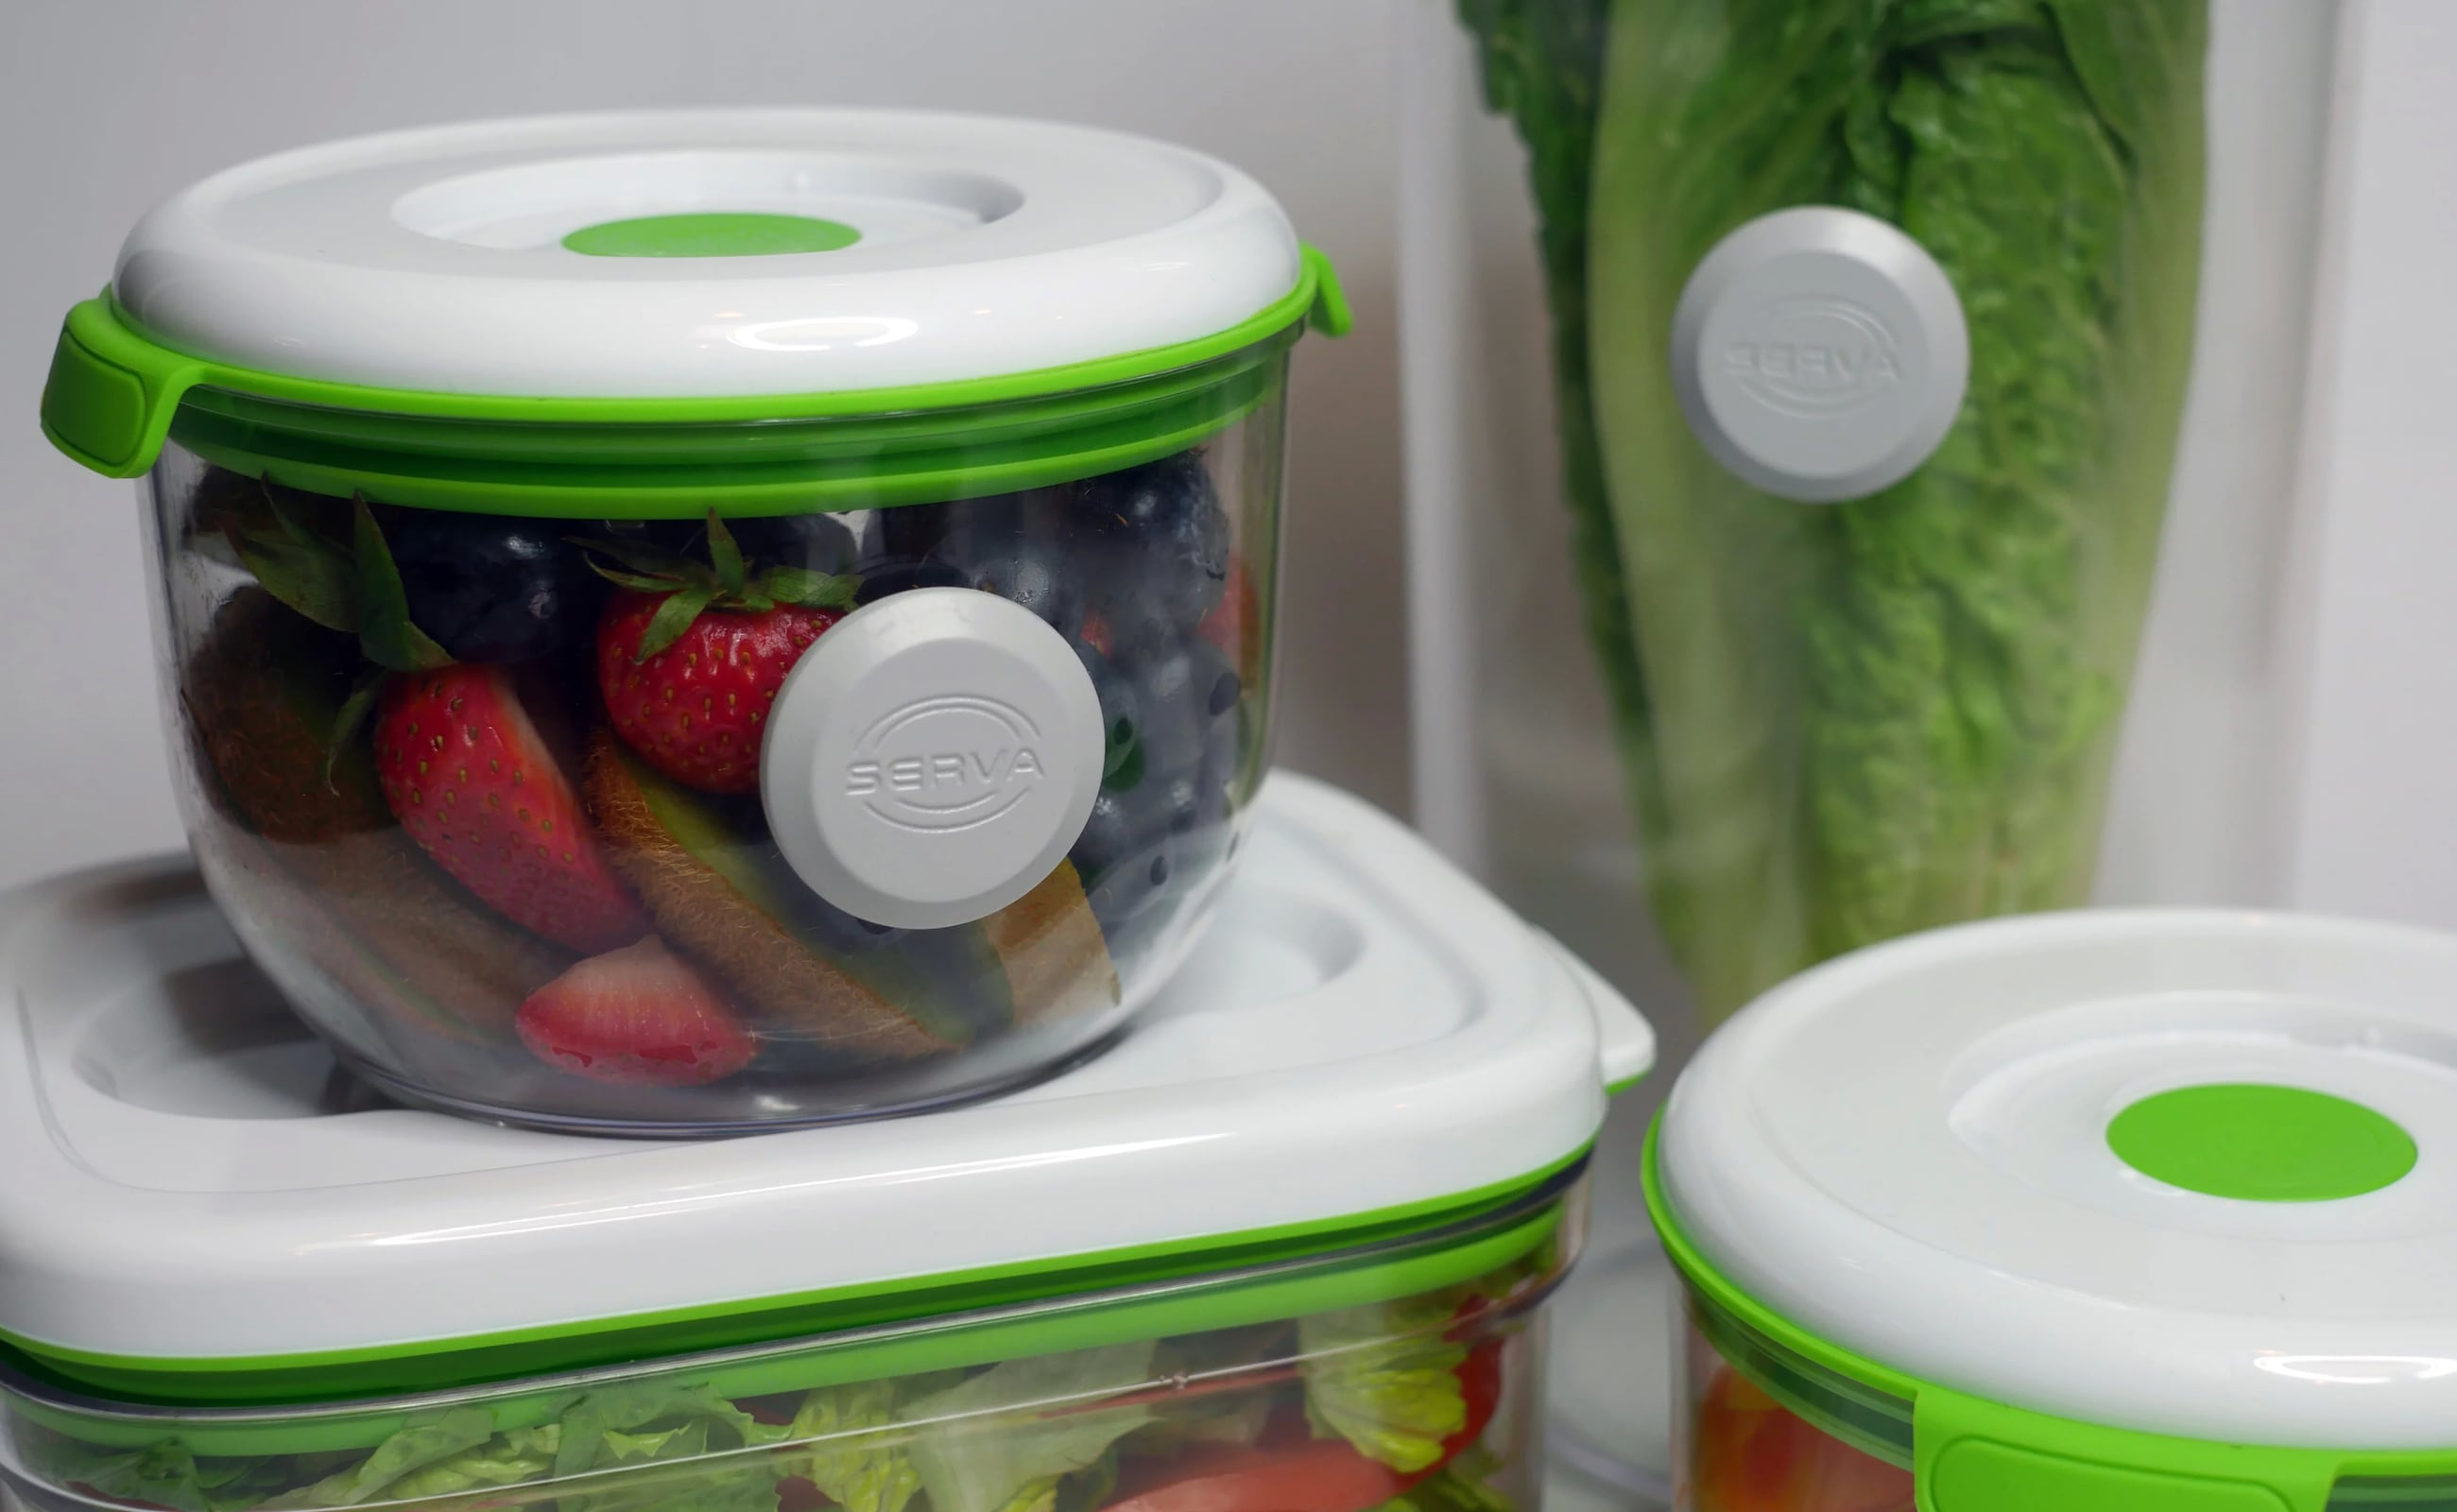 Serva & FOSA® NFC Food Preservation System tracks your food to help you avoid food waste